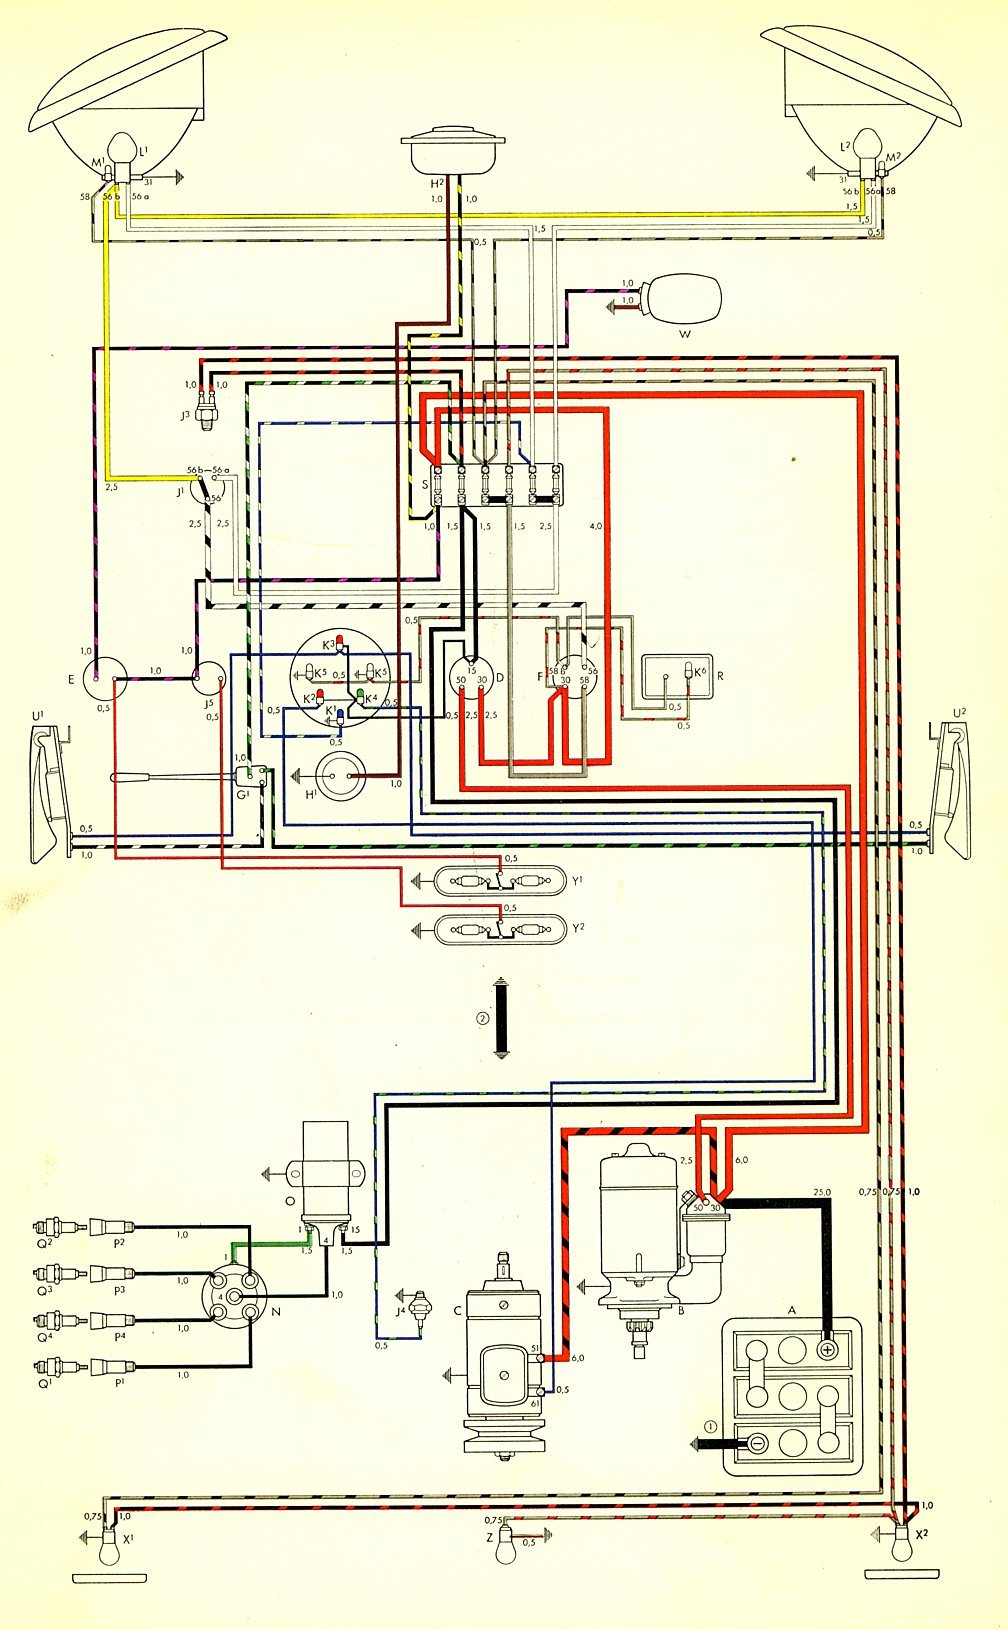 1965 Vw Van Wiring Diagram Wiring Diagram Reader B Reader B Saleebalocchi It